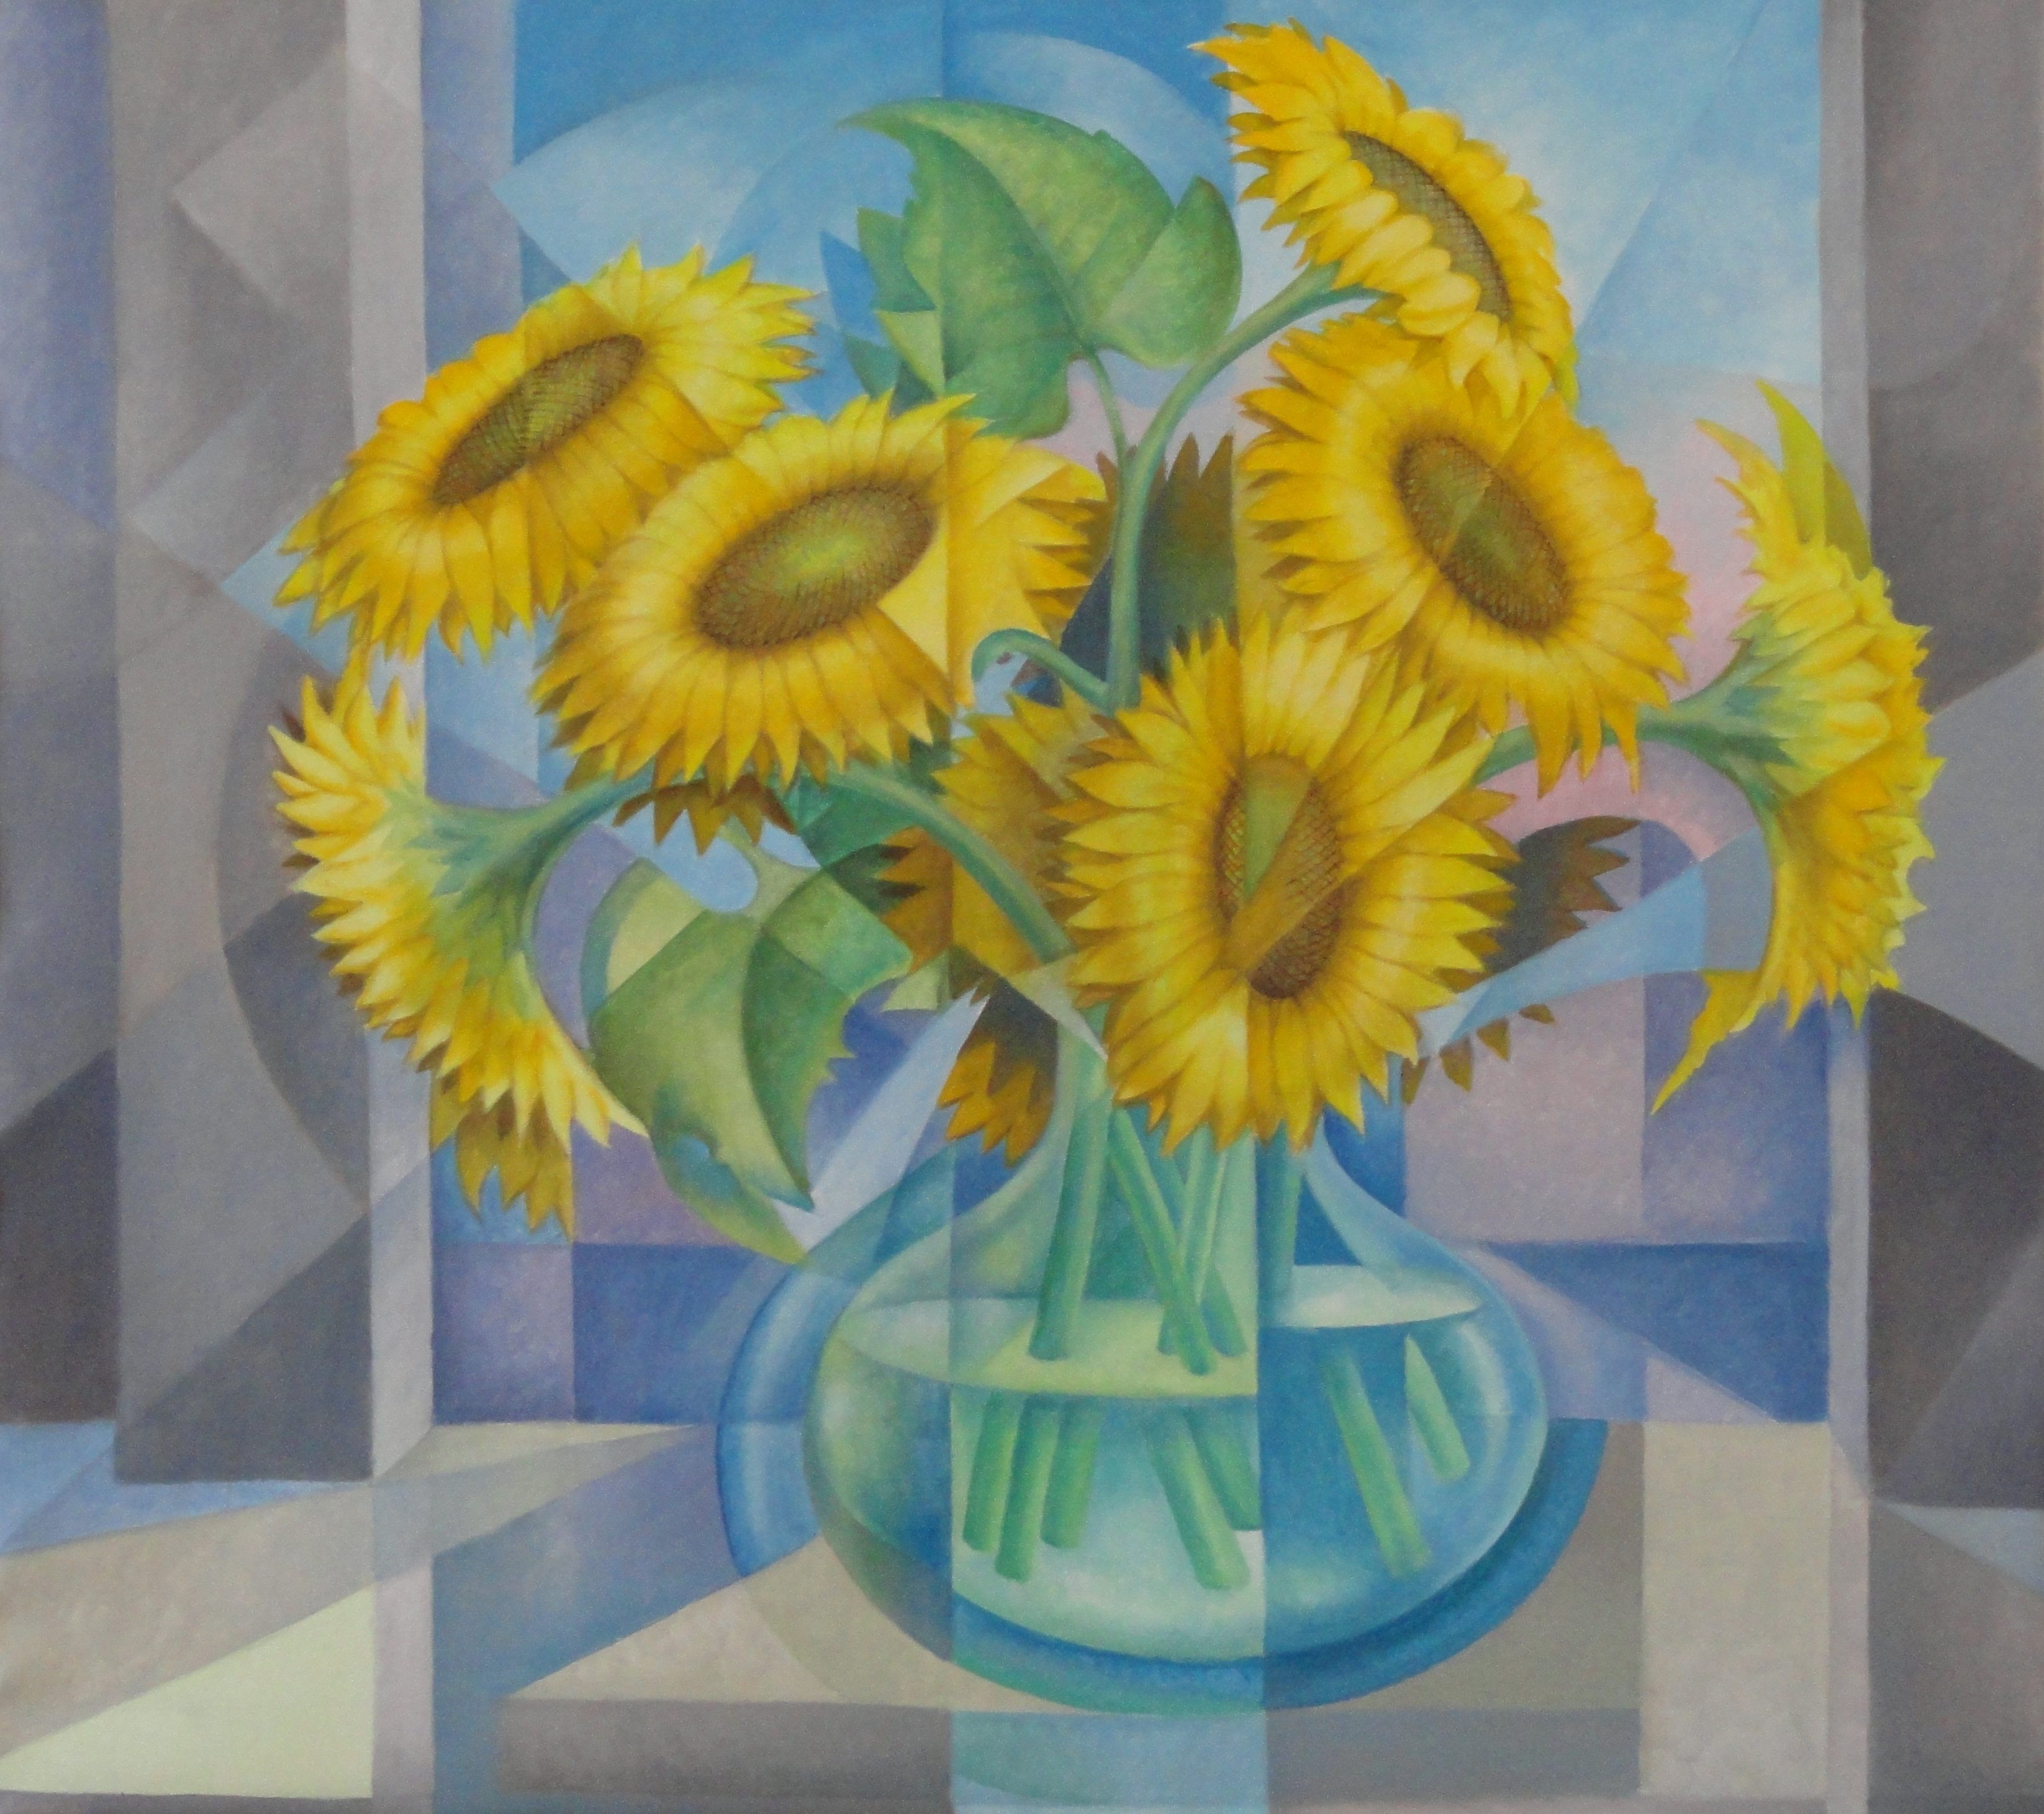 Sunflowers in Vase